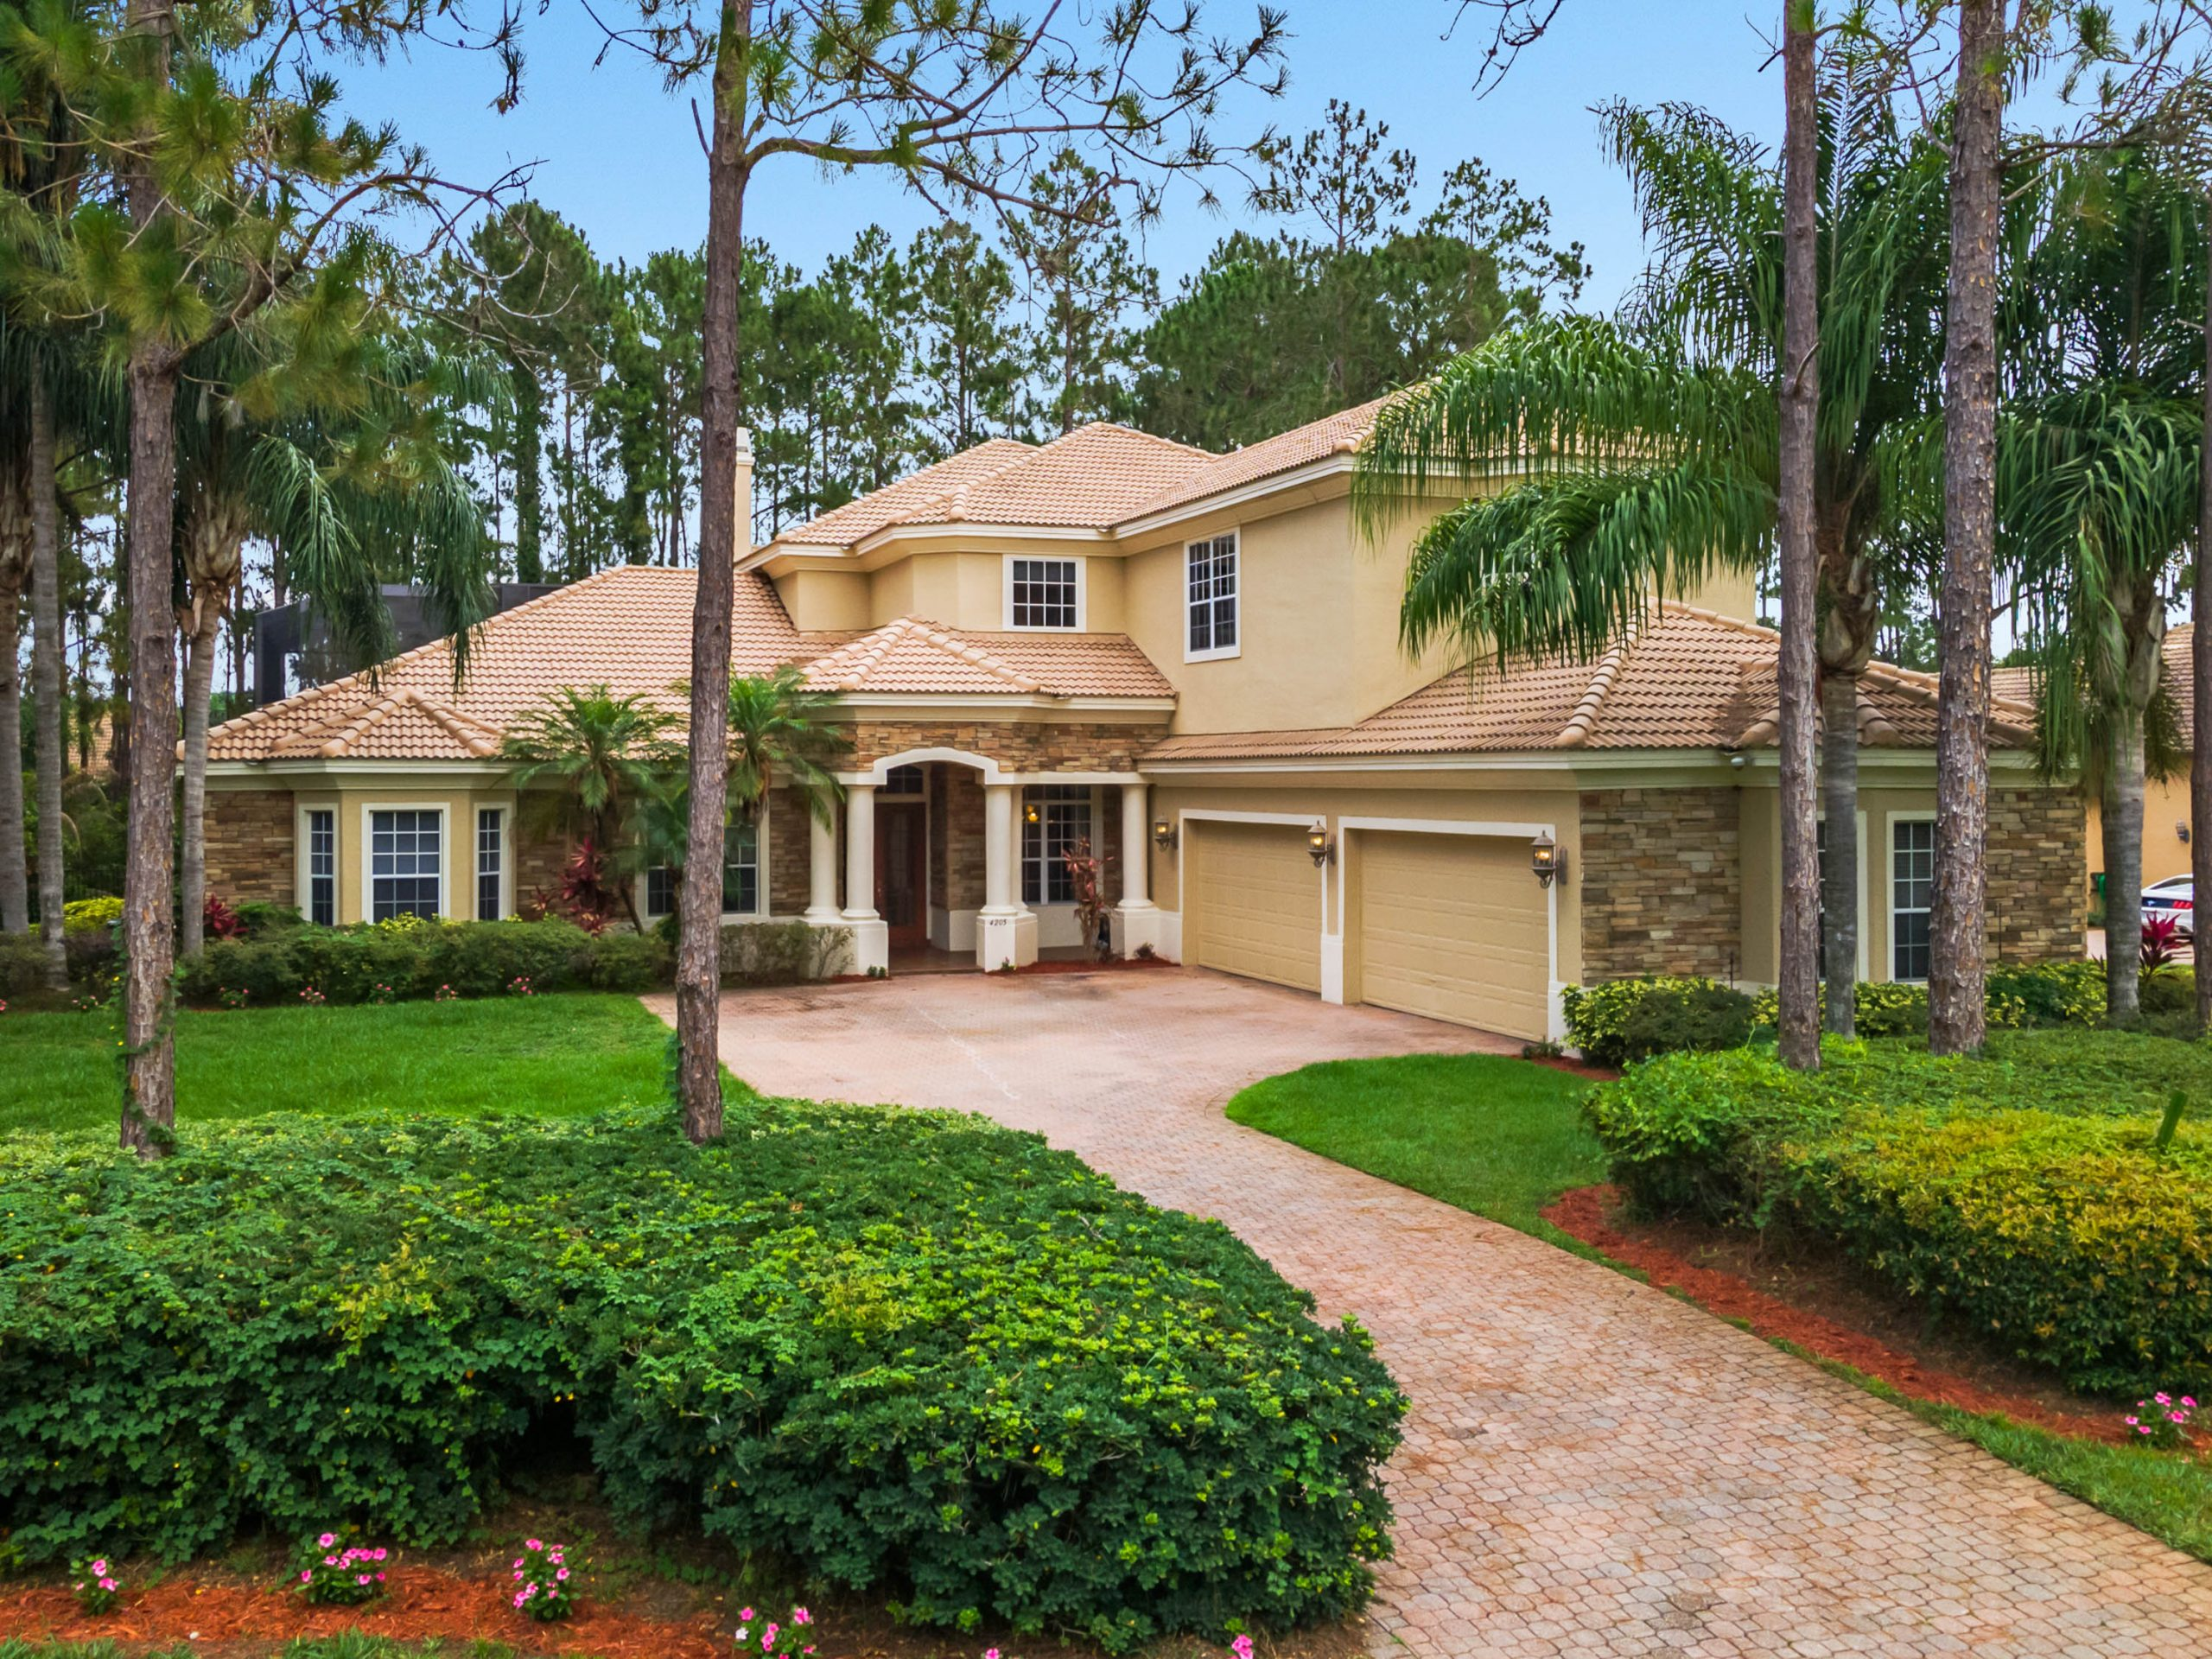 7 Bedroom 9 Bath Windermere Home Hits in the Market